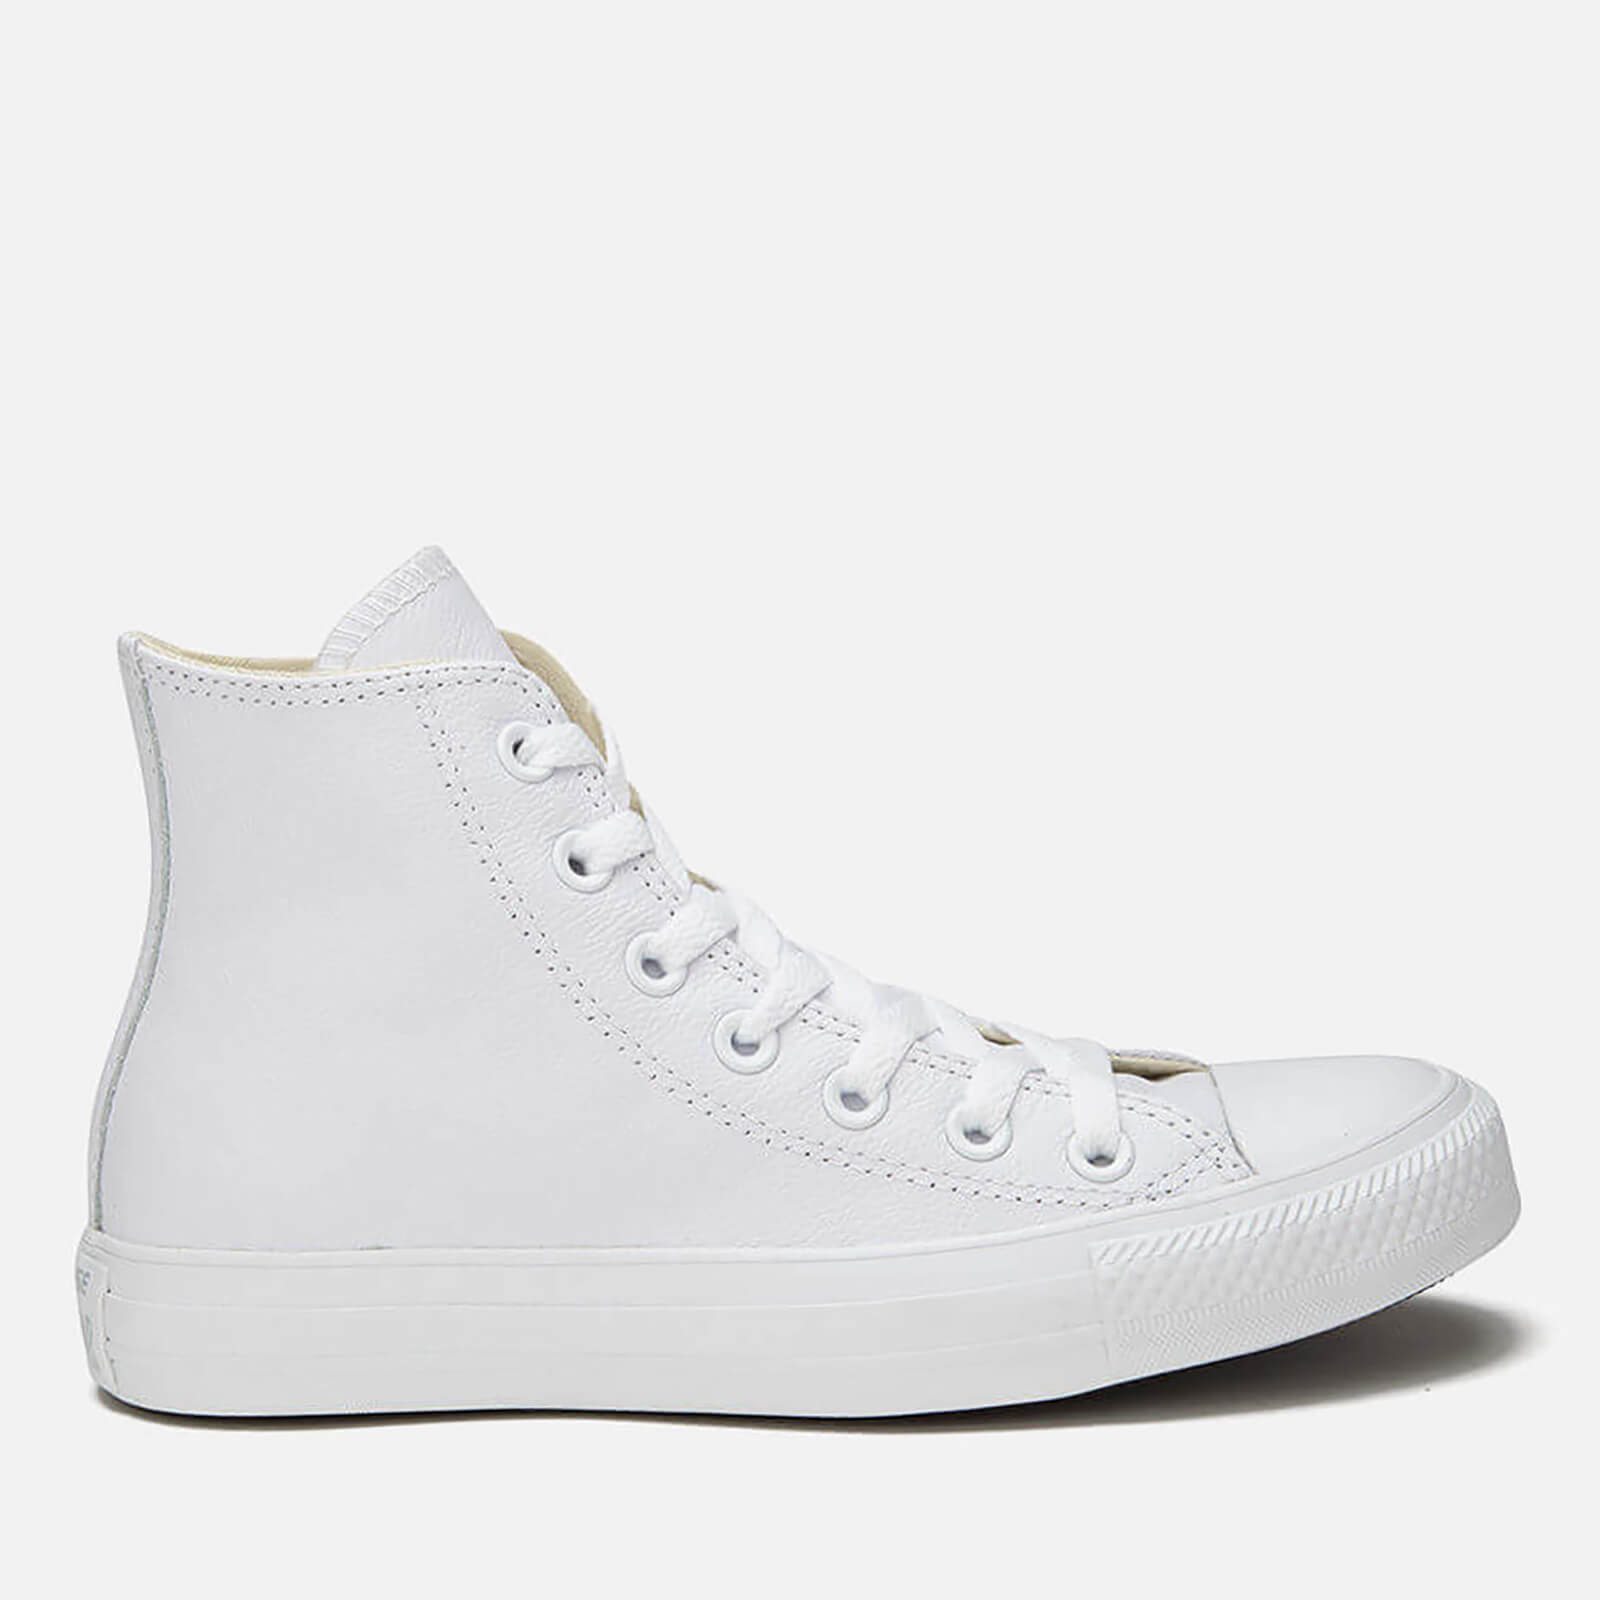 d95e3b3f8b16c Converse Unisex Chuck Taylor All Star Leather Hi-Top Trainers - White  Monochrome